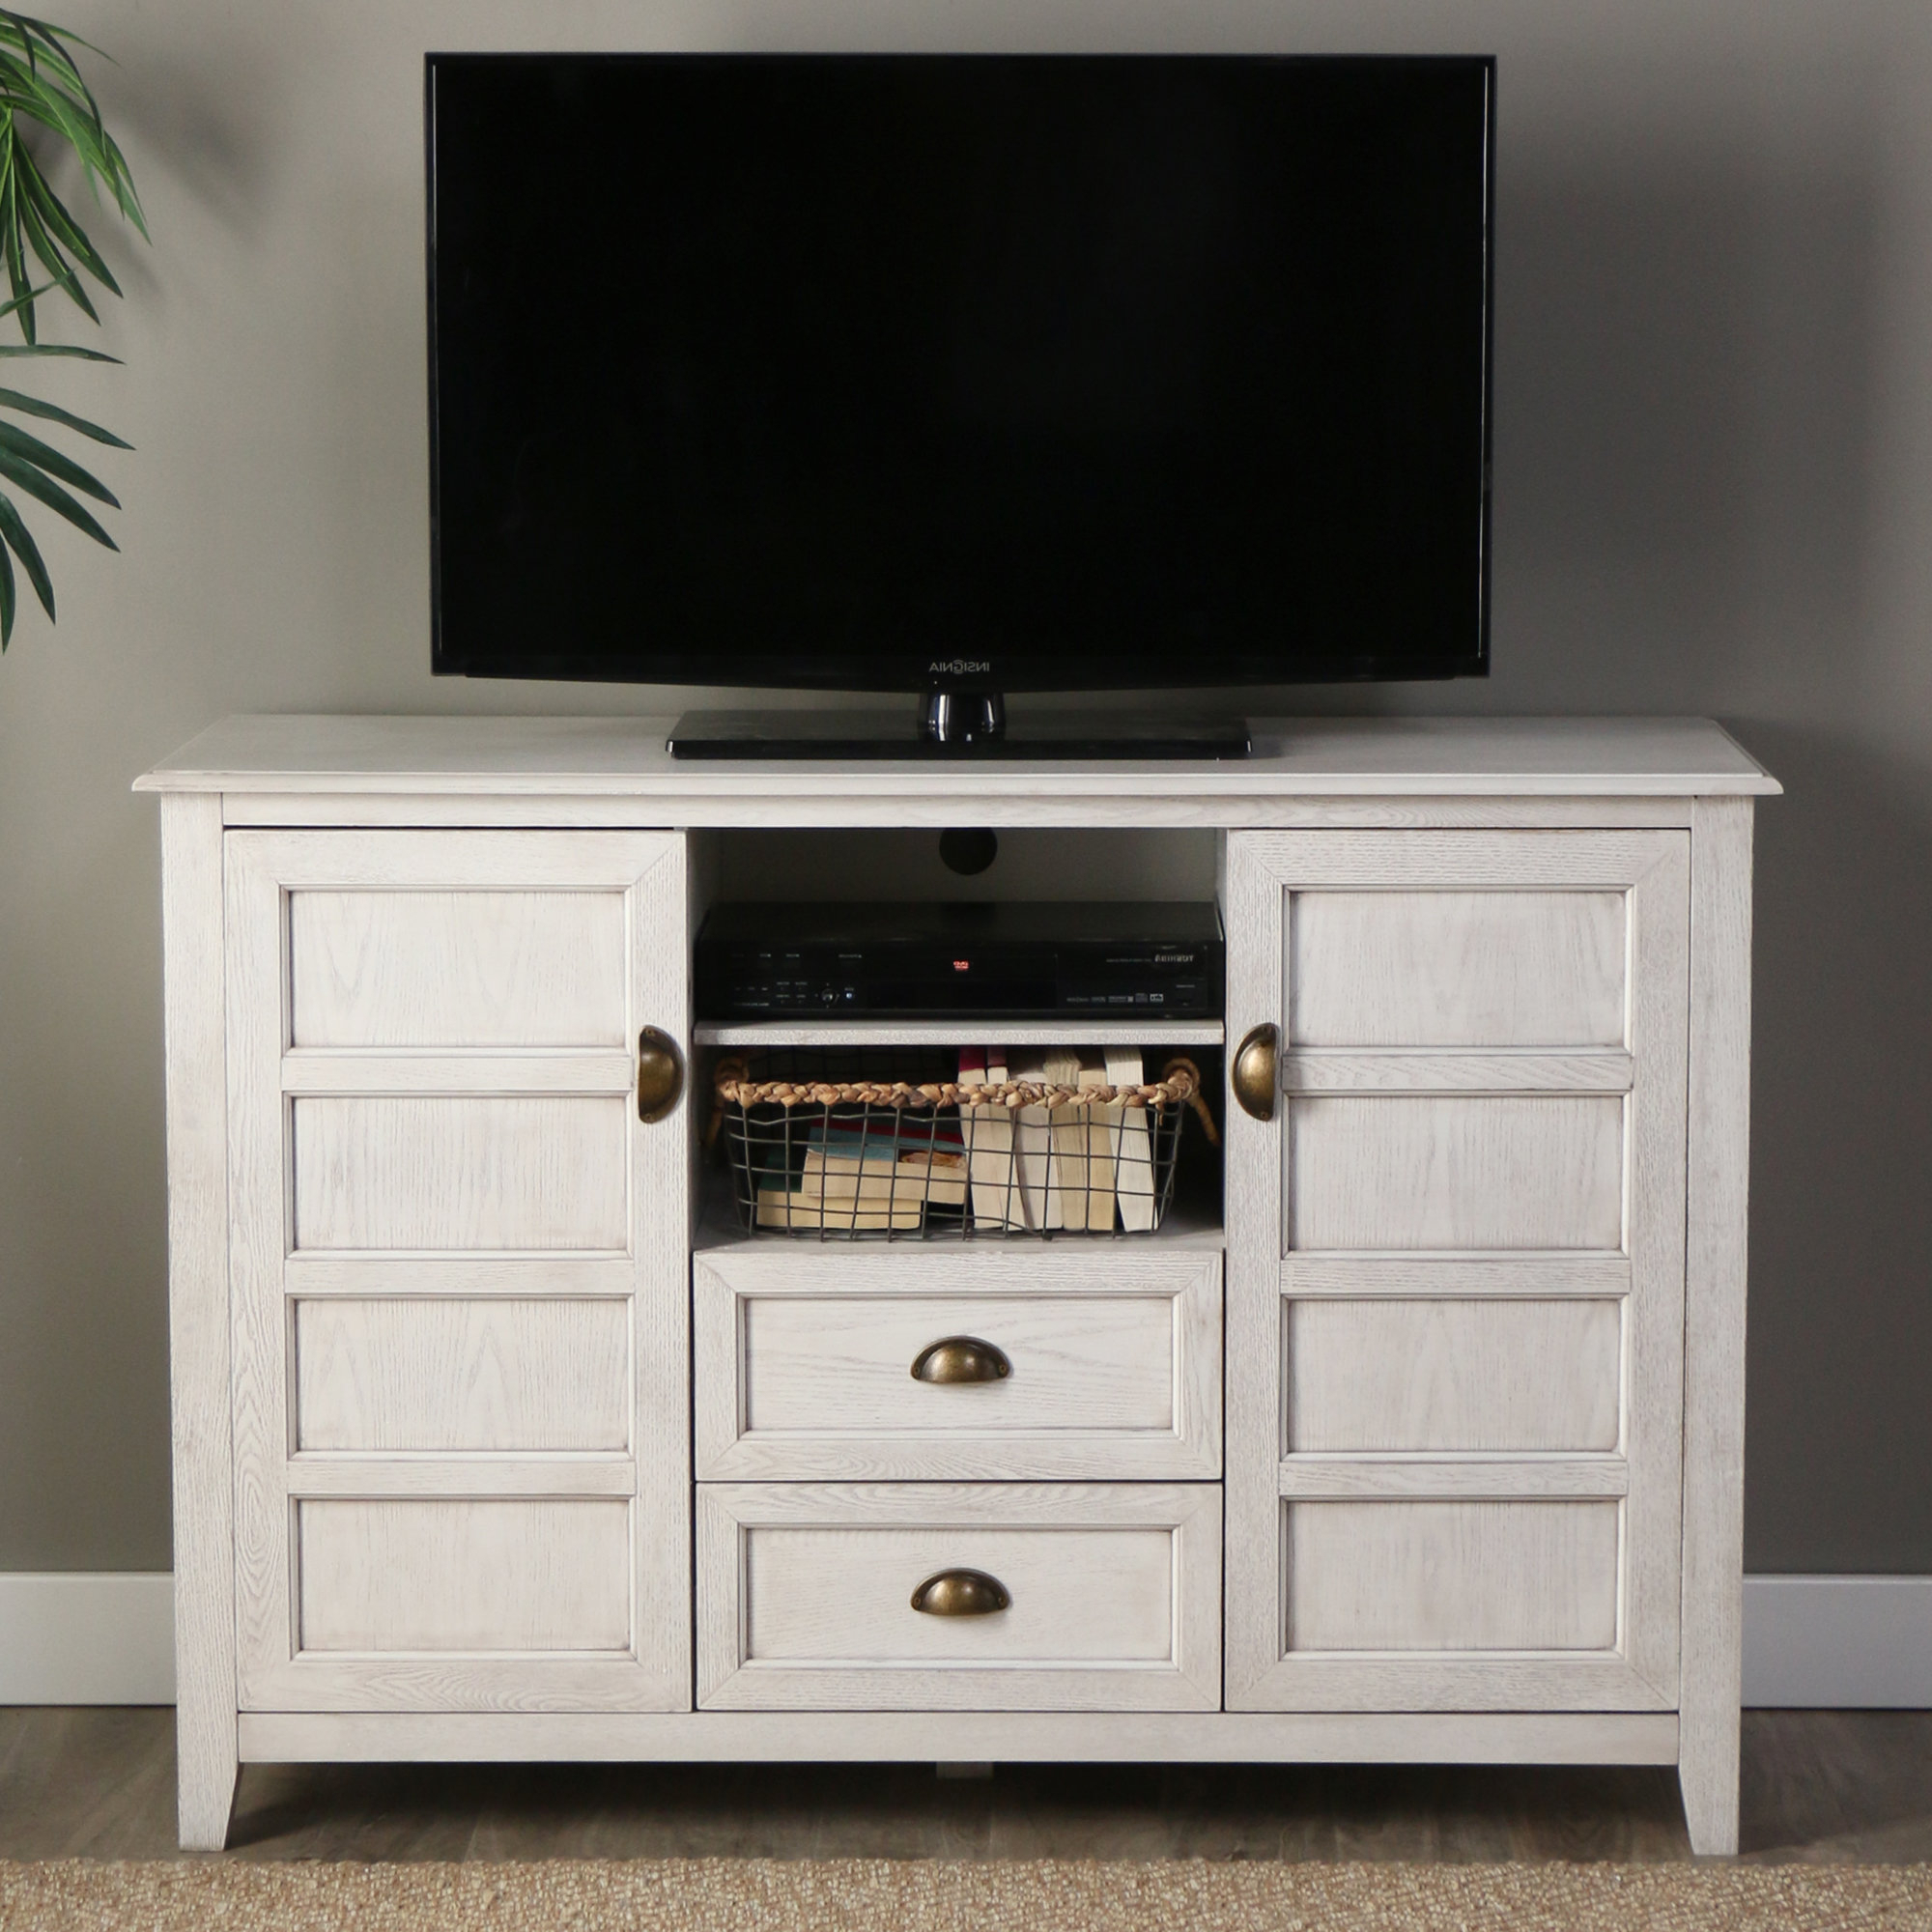 "Most Current Stylish Tv Cabinets Intended For Angelo:home Chic Tv Stand For Tvs Up To 58"" & Reviews (View 6 of 20)"